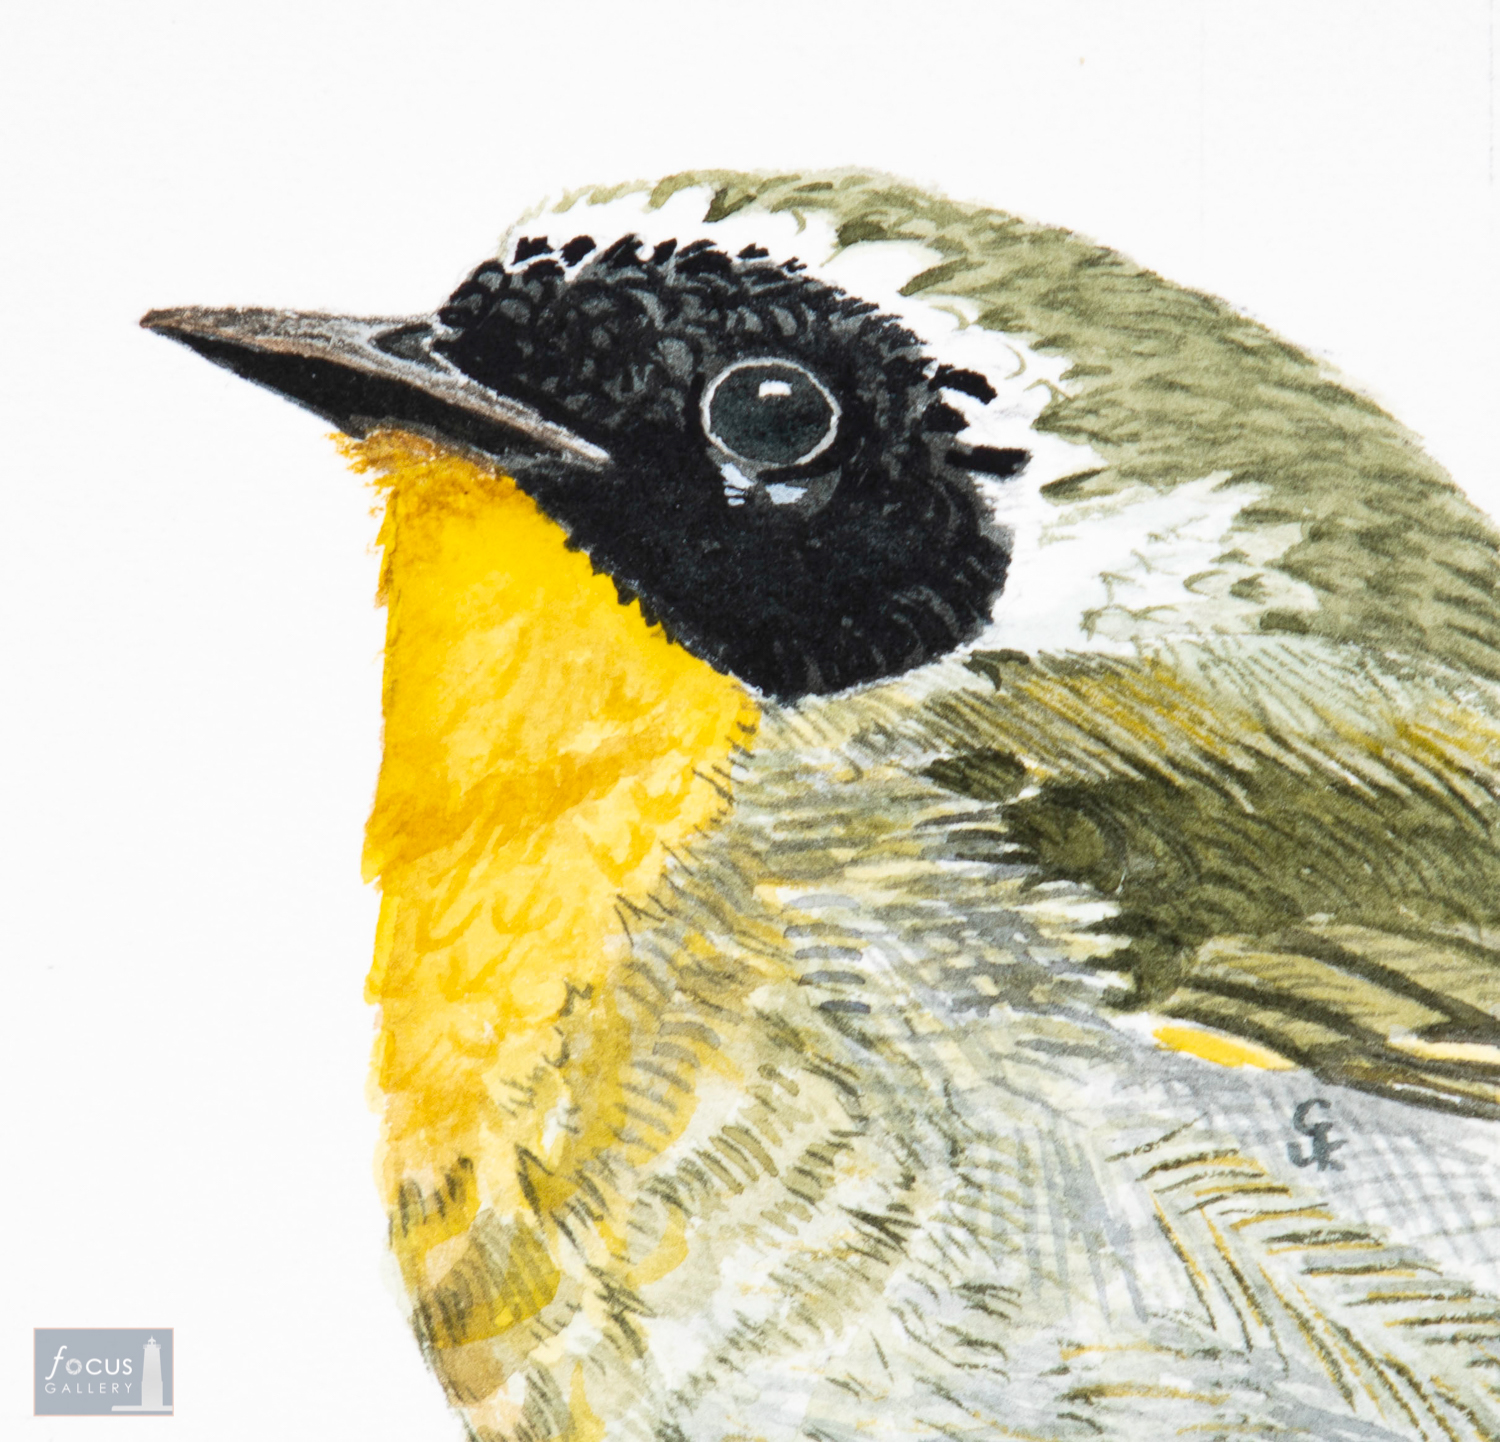 Original watercolor painting of the detail of a Common Yellowthroat Warbler's head and feathers.